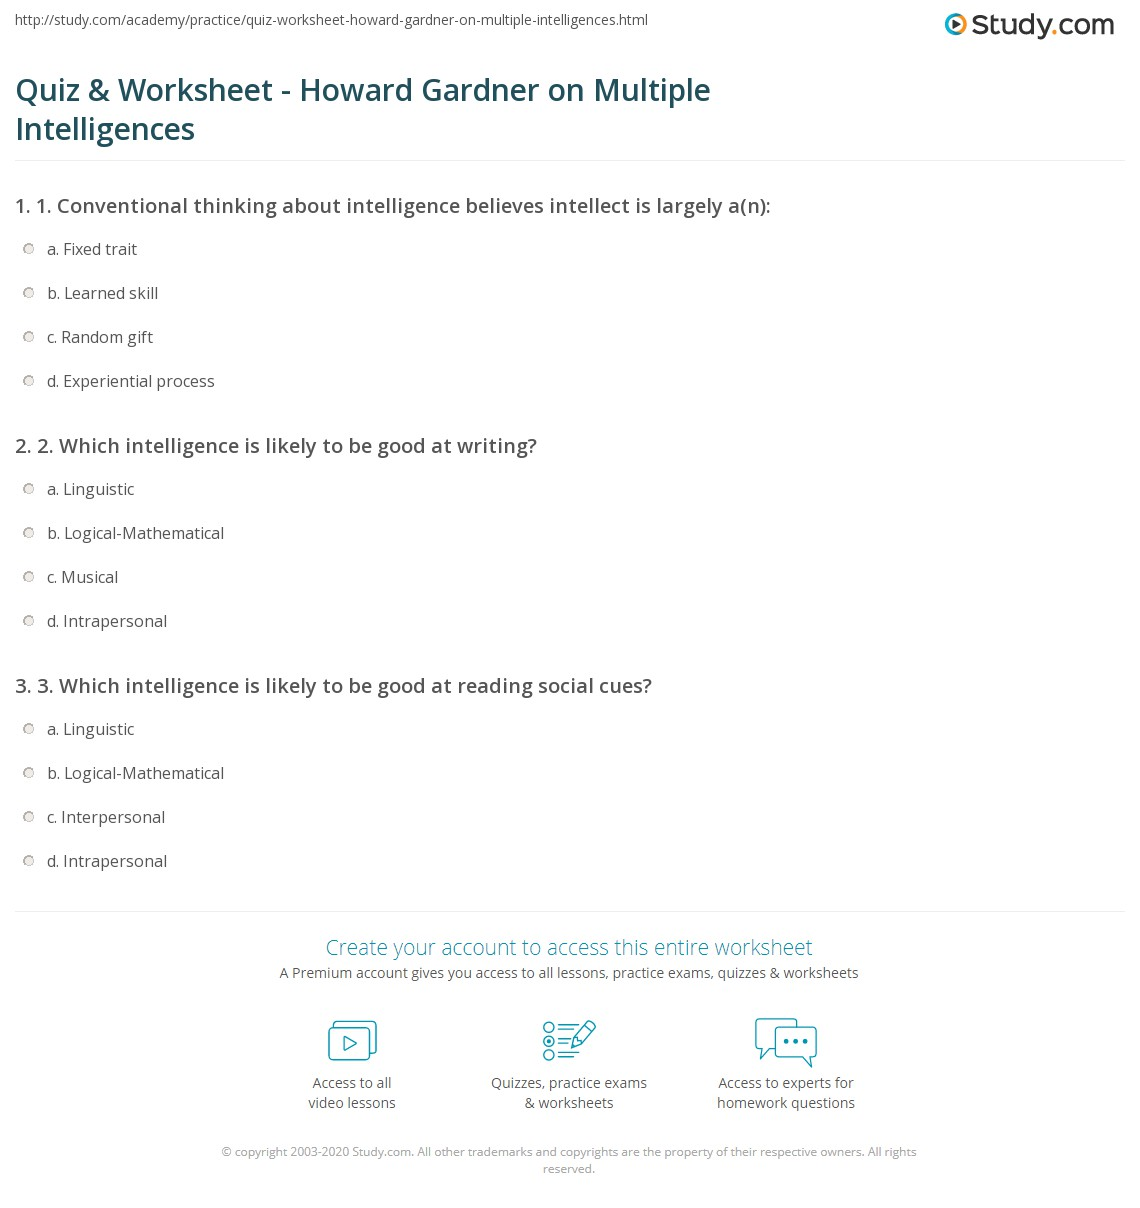 picture regarding Howard Gardner Multiple Intelligences Test Printable known as Quiz Worksheet - Howard Gardner upon Several Intelligences